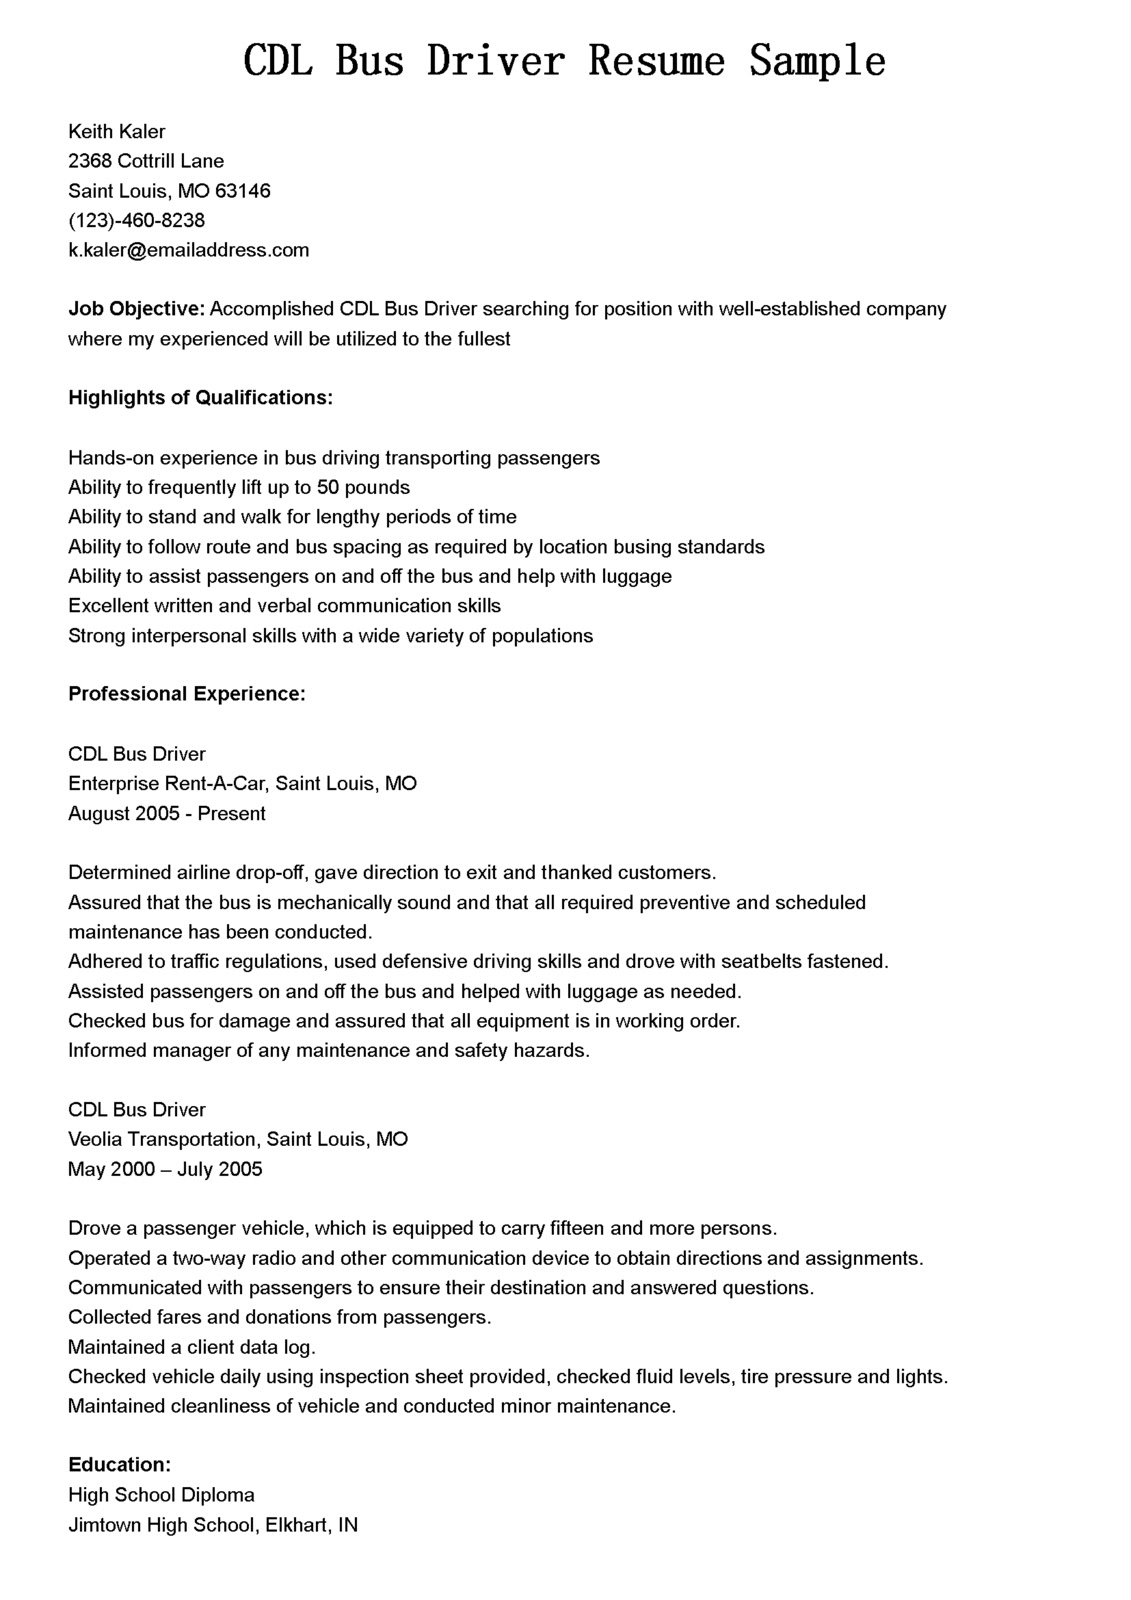 Stunning Profile And Educations Skills For Forklift Operator Resume Sample  A Part Of Under Operator VisualCV  Sample Resume For Forklift Operator